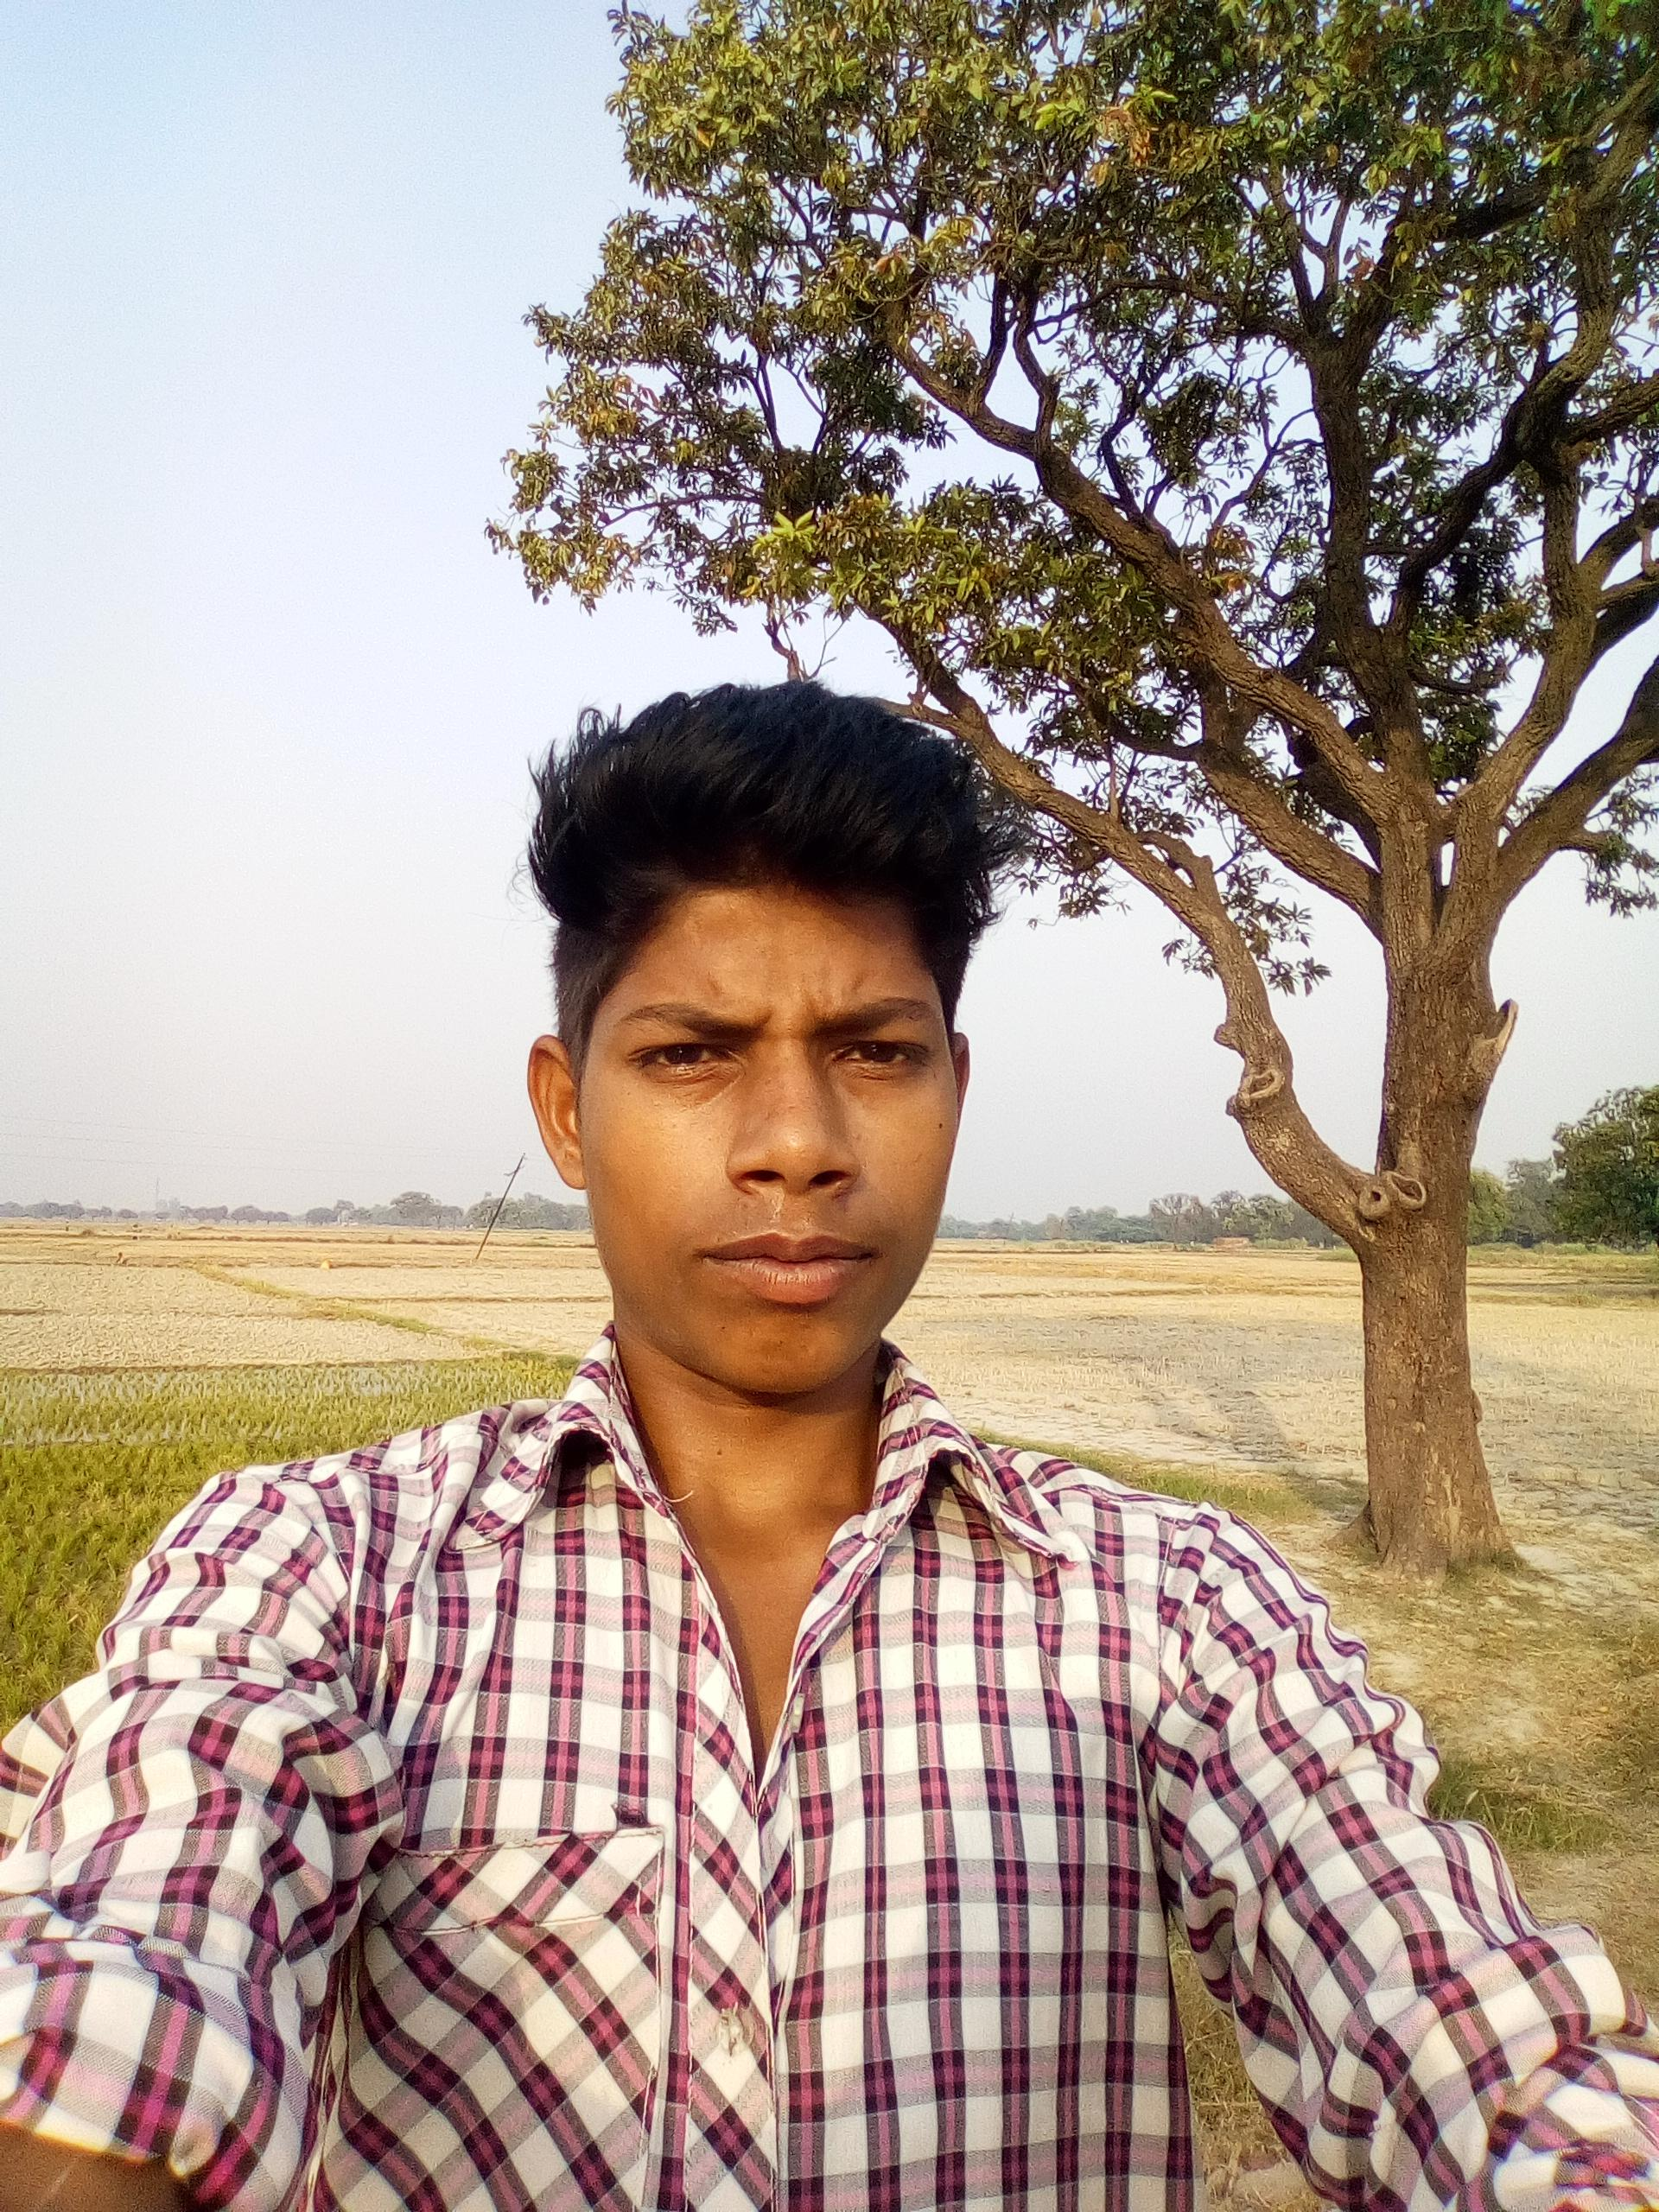 Maneesh Kumar Pal